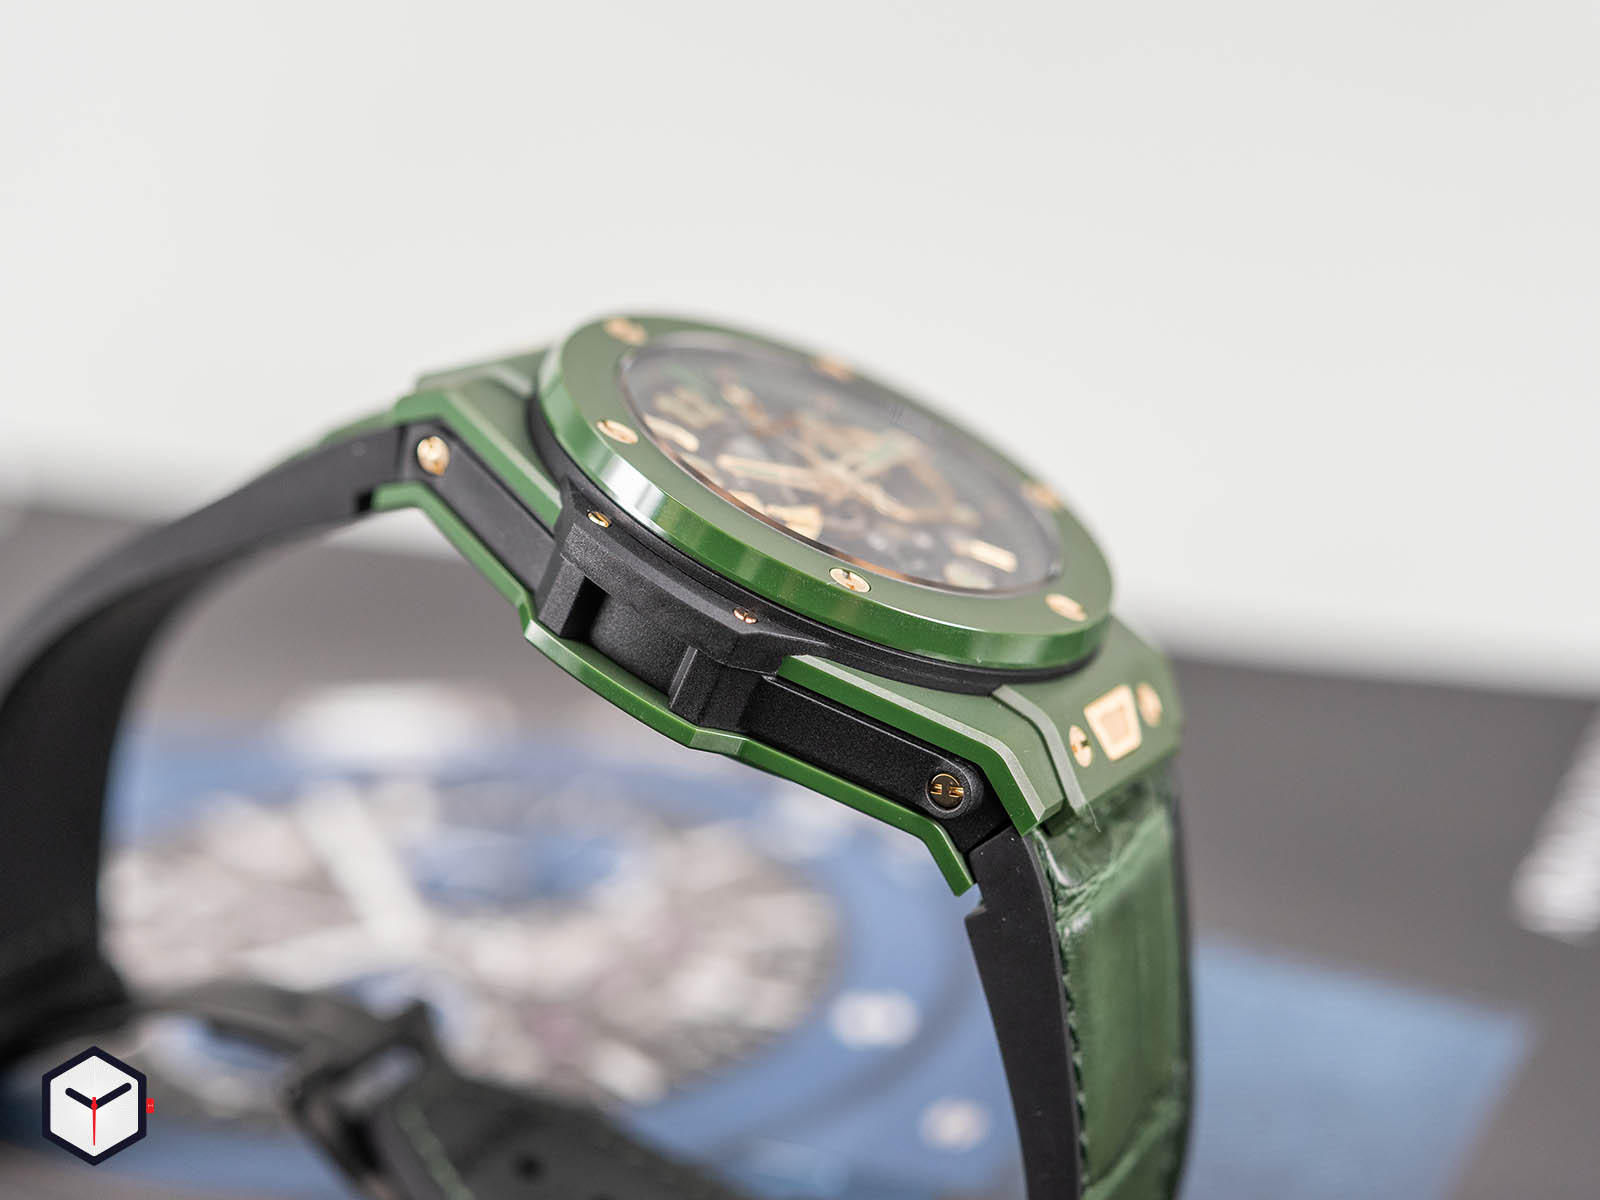 411-gx-1189-lr-wbc19-hublot-big-bang-unico-wbc-5.jpg